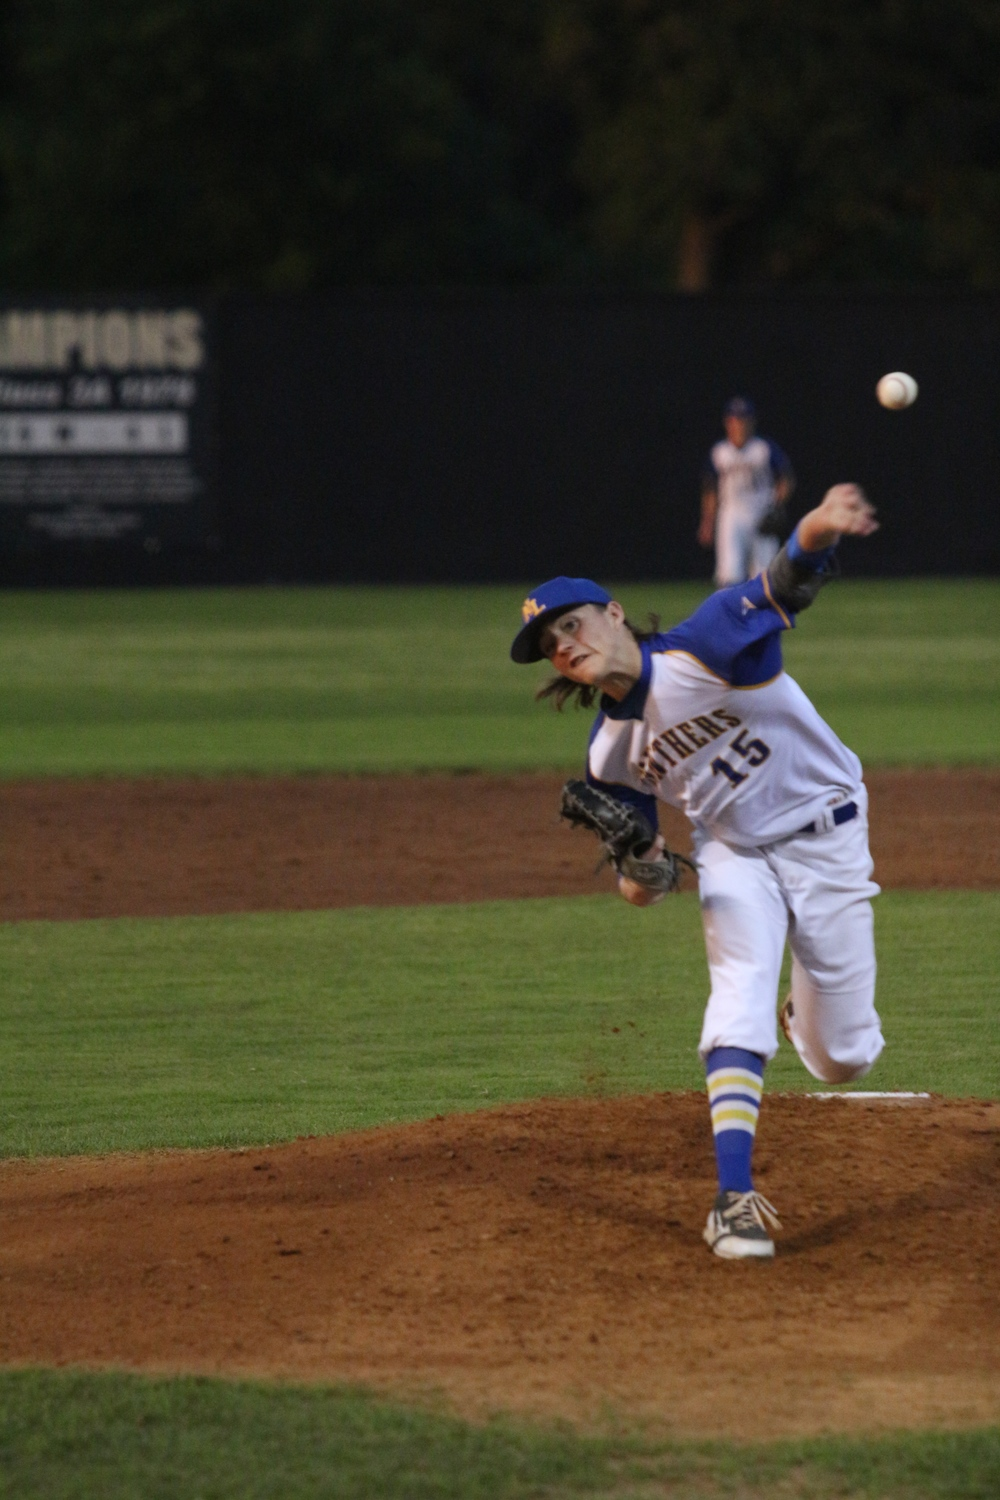 (Photo by Bill Higgins) Kevin Dickey delivering a pitch for North Lamar in game 2 against Van.